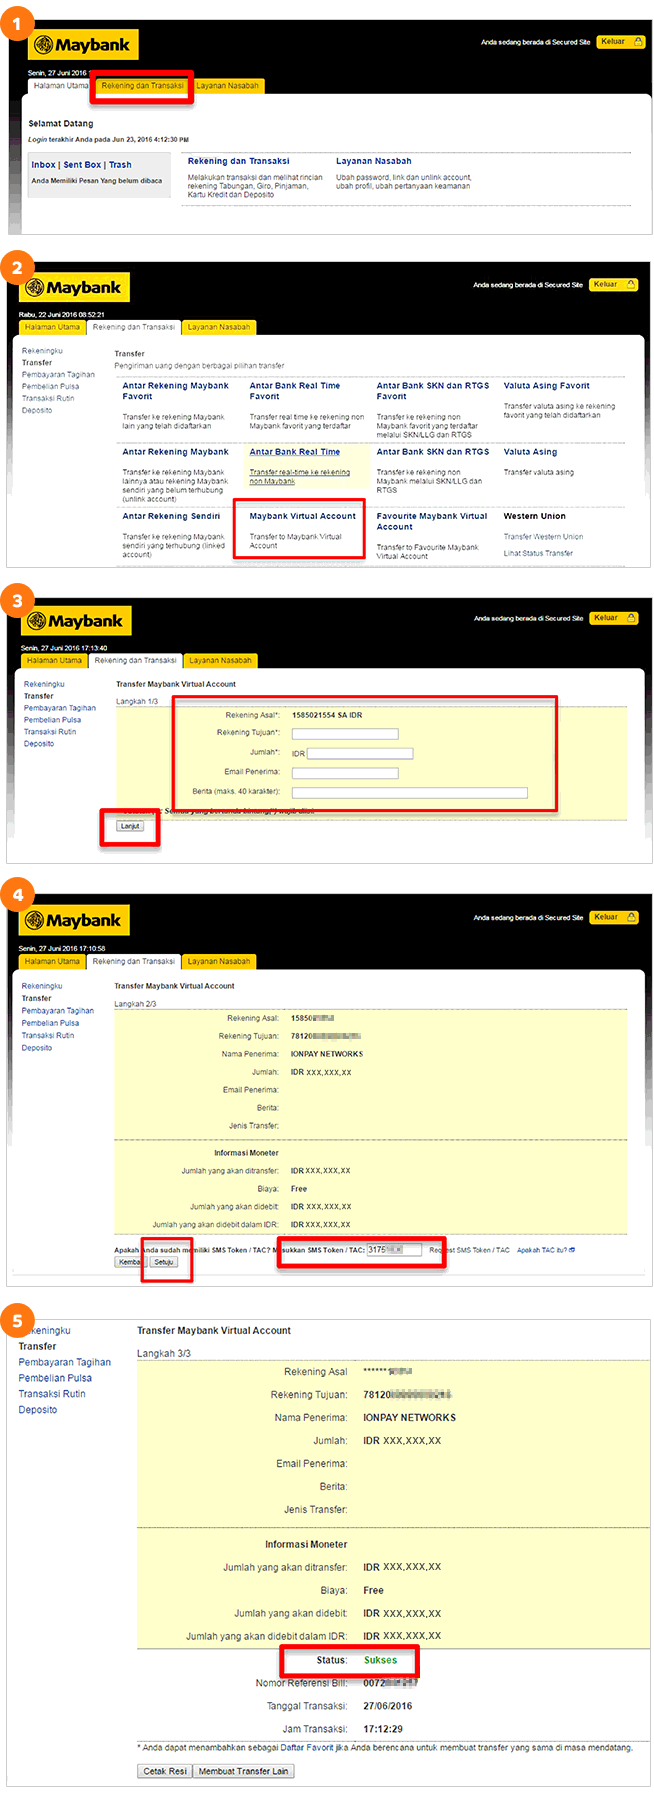 maybank online banking system Home online banking online banking online application online bill payment how to sign up faqs what should i do if i forgot my m2u username and password terms & conditions | security | e-banking charter | mycareer | 2018 malayan banking berhad (company no, 3813-k.